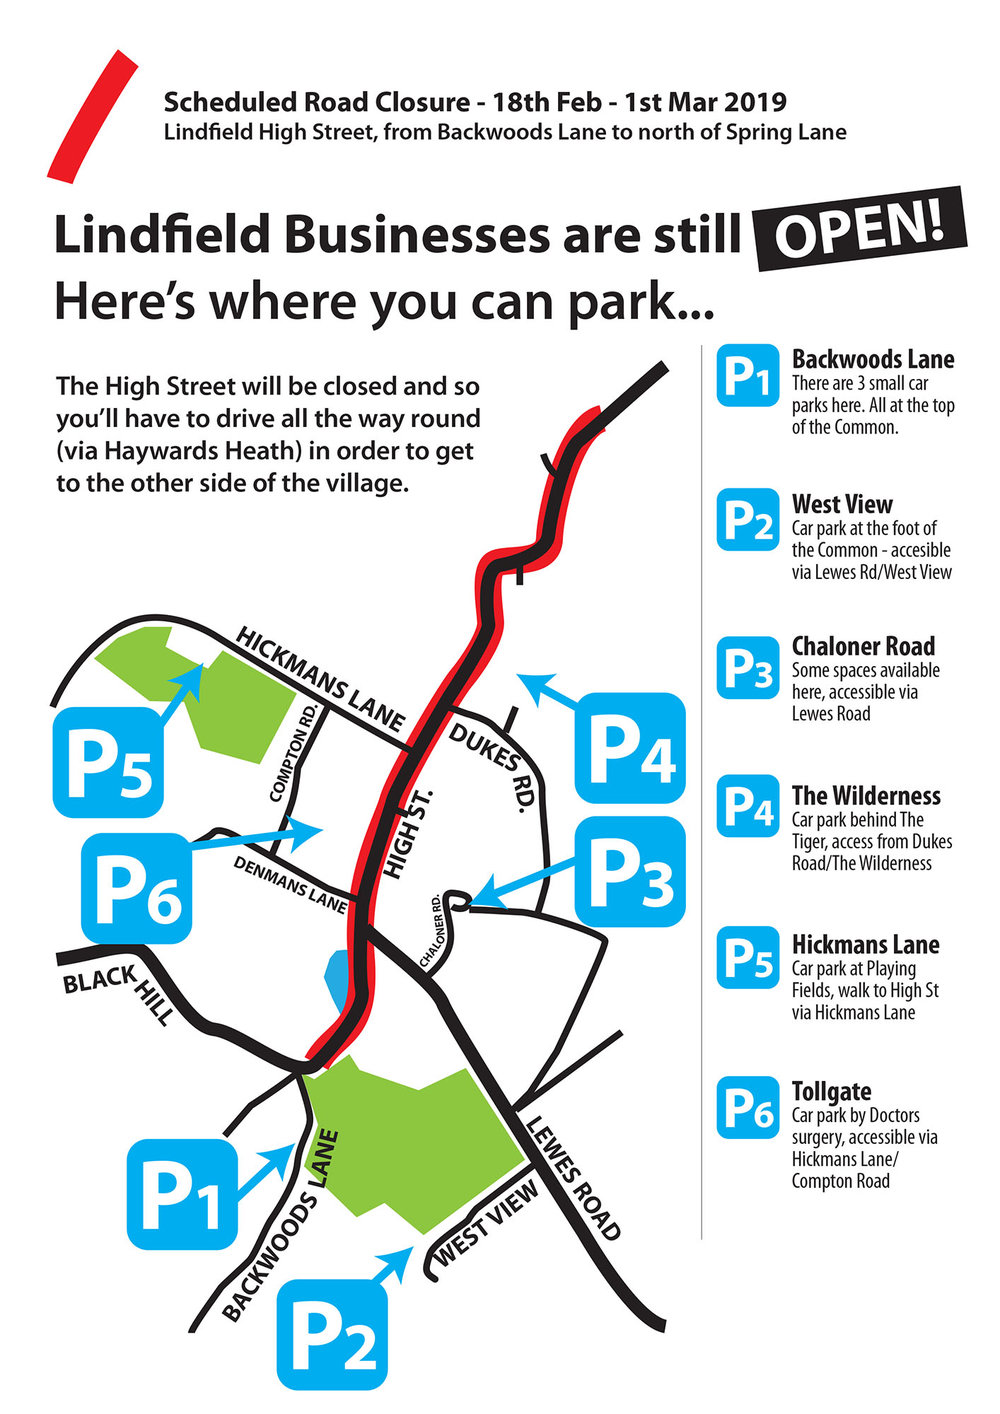 Where to park when shopping in Lindfield, during the works…